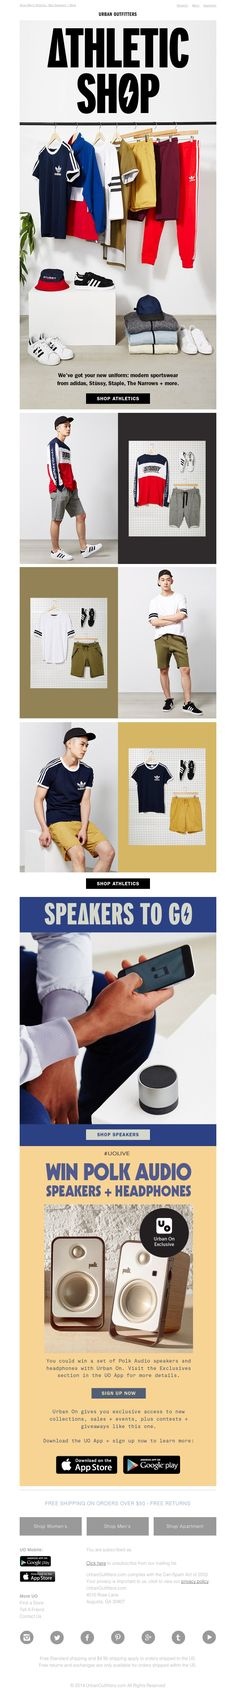 """Urban Outfitters - Athletic Shop...mix of """"Still life"""" and OF showing key outfitting"""